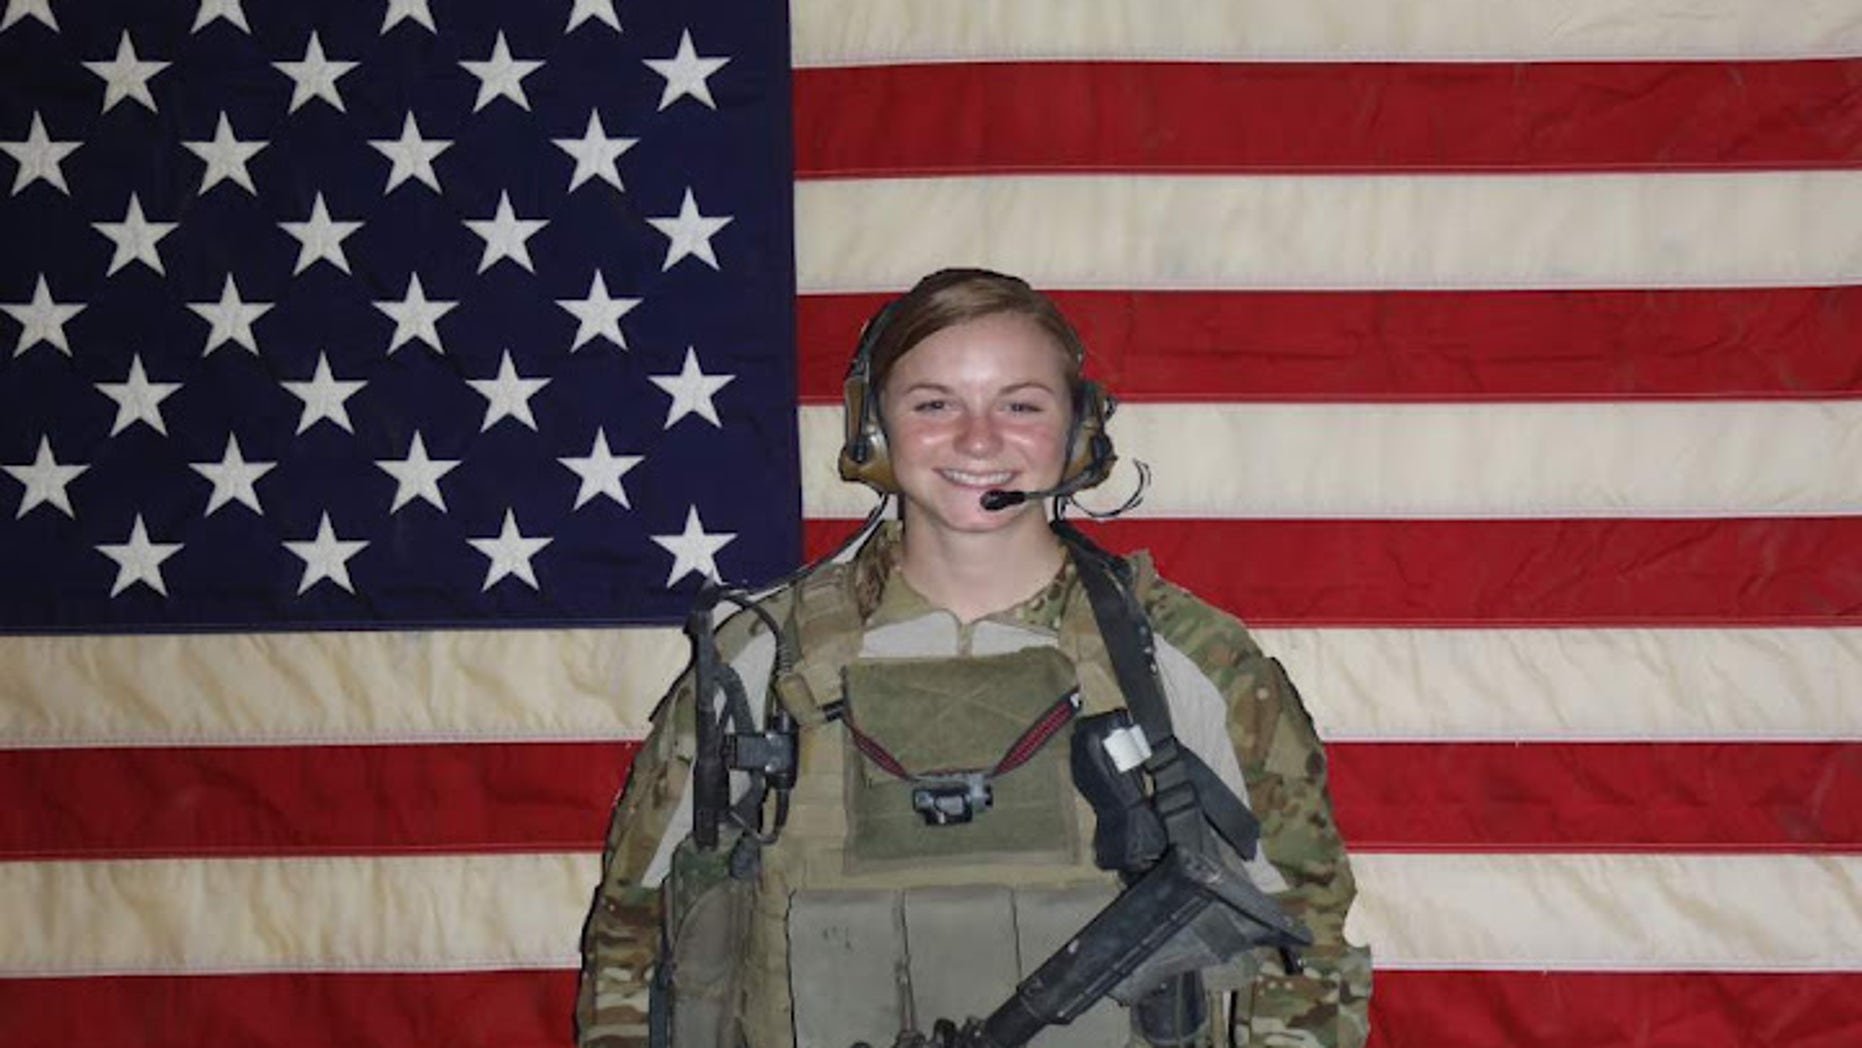 1st Lt. Ashley White Stumpf who was killed during combat operations in Kandahar Province, Afghanistan on October 22, 2011. (Courtesy the White family)